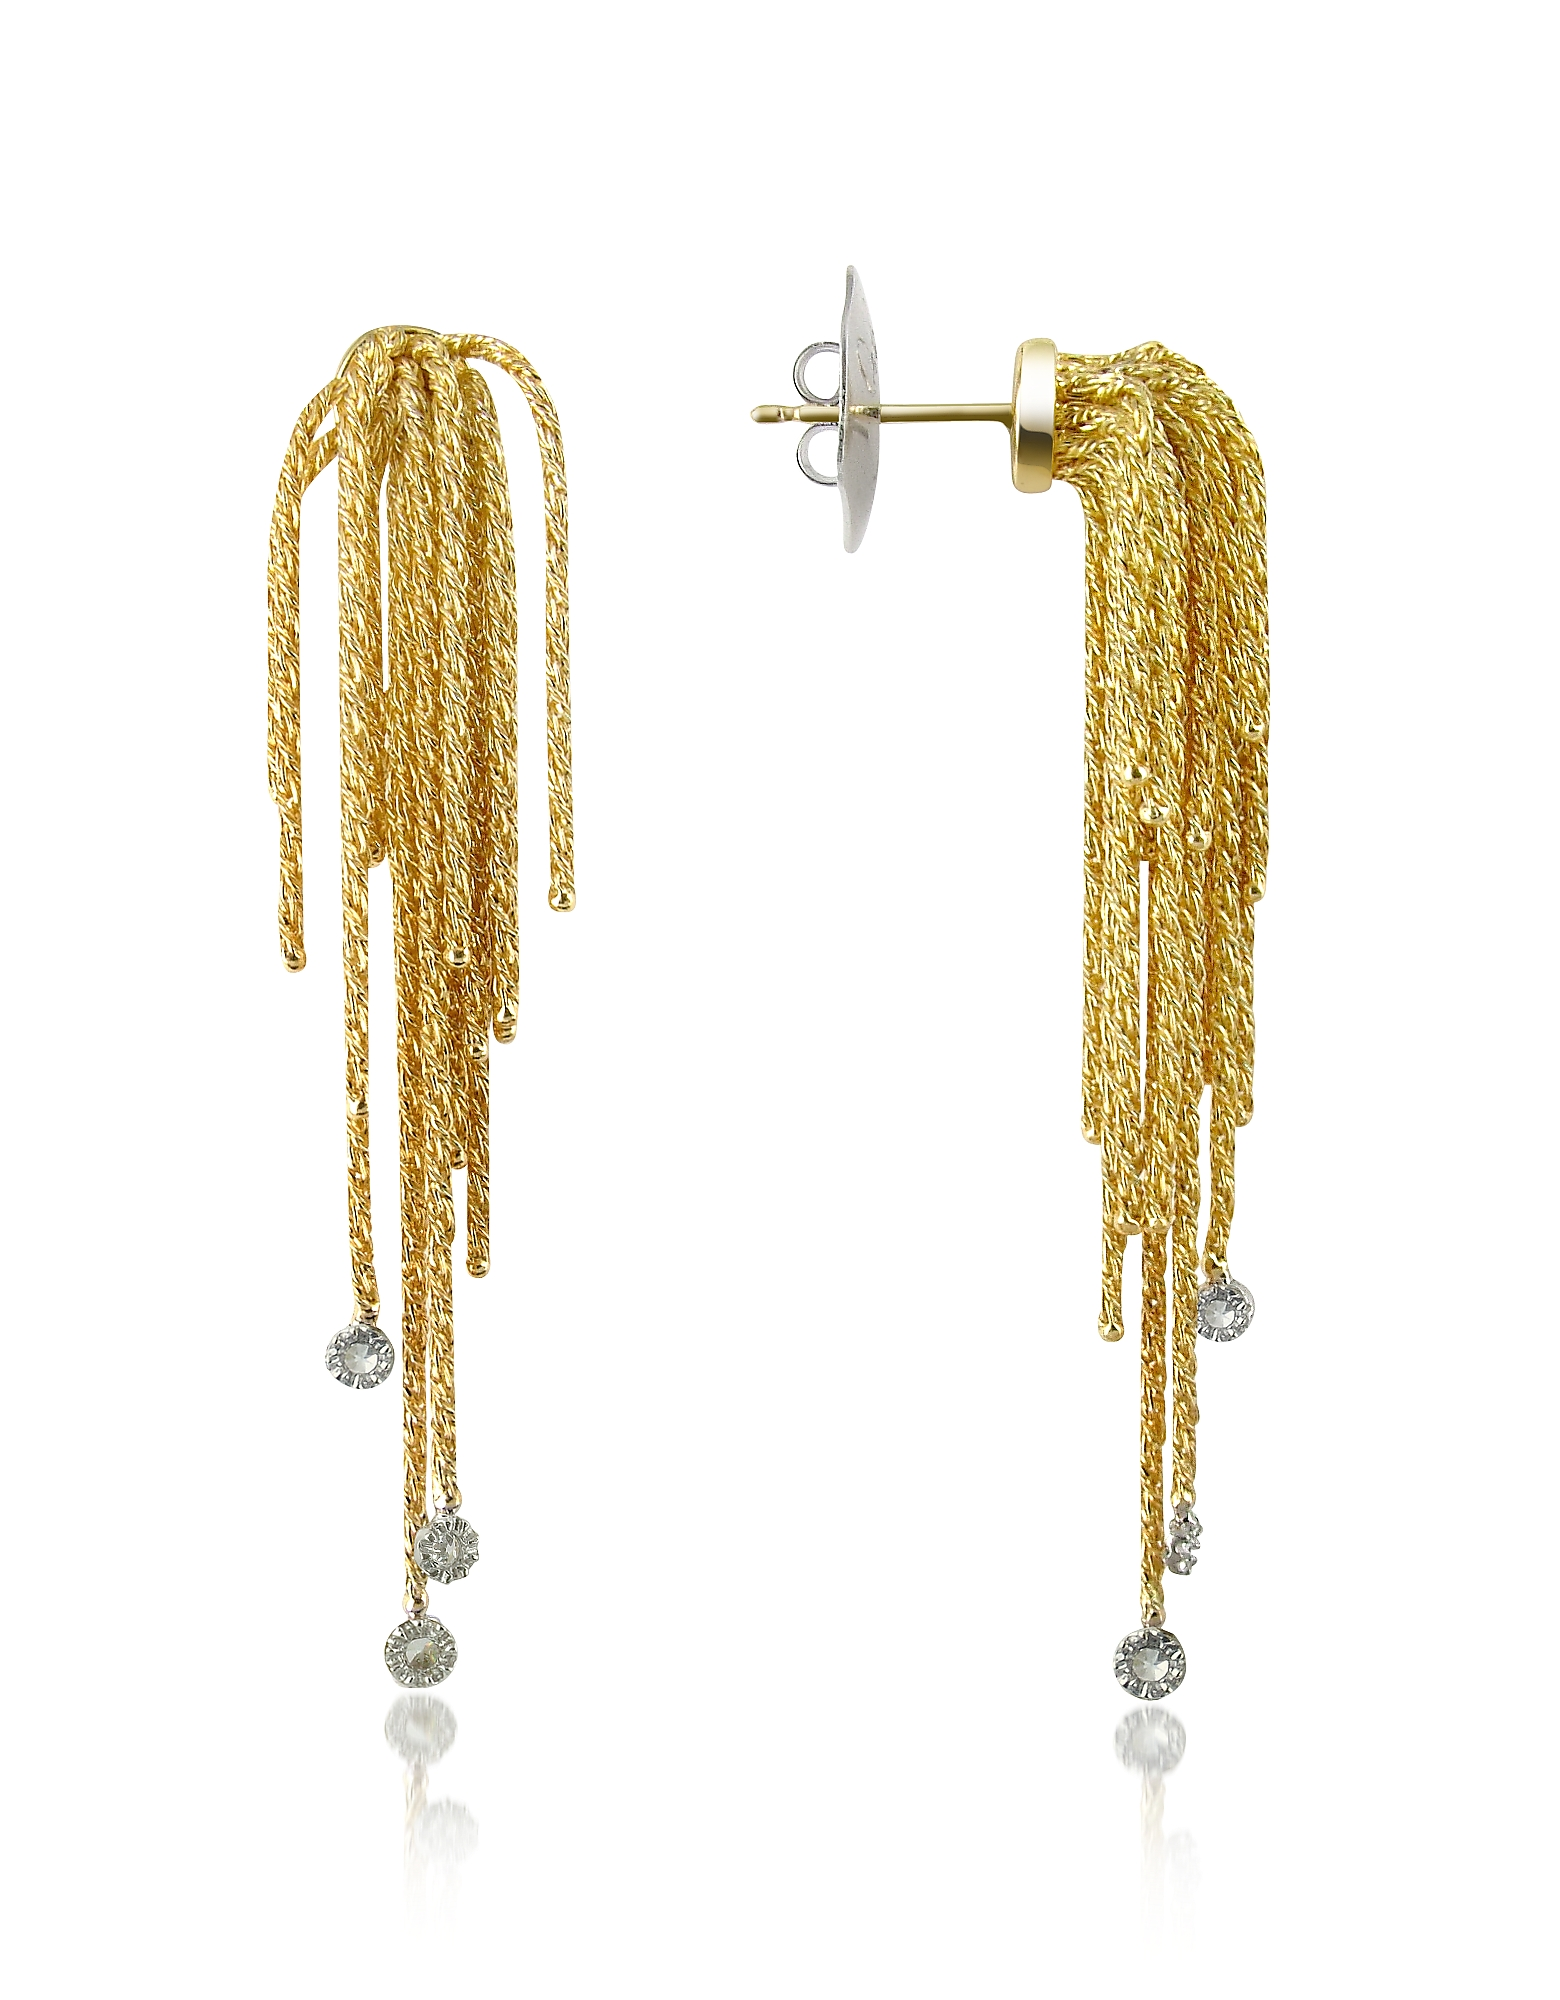 Flirt – Diamond Drops 18K Yellow Gold Earrings